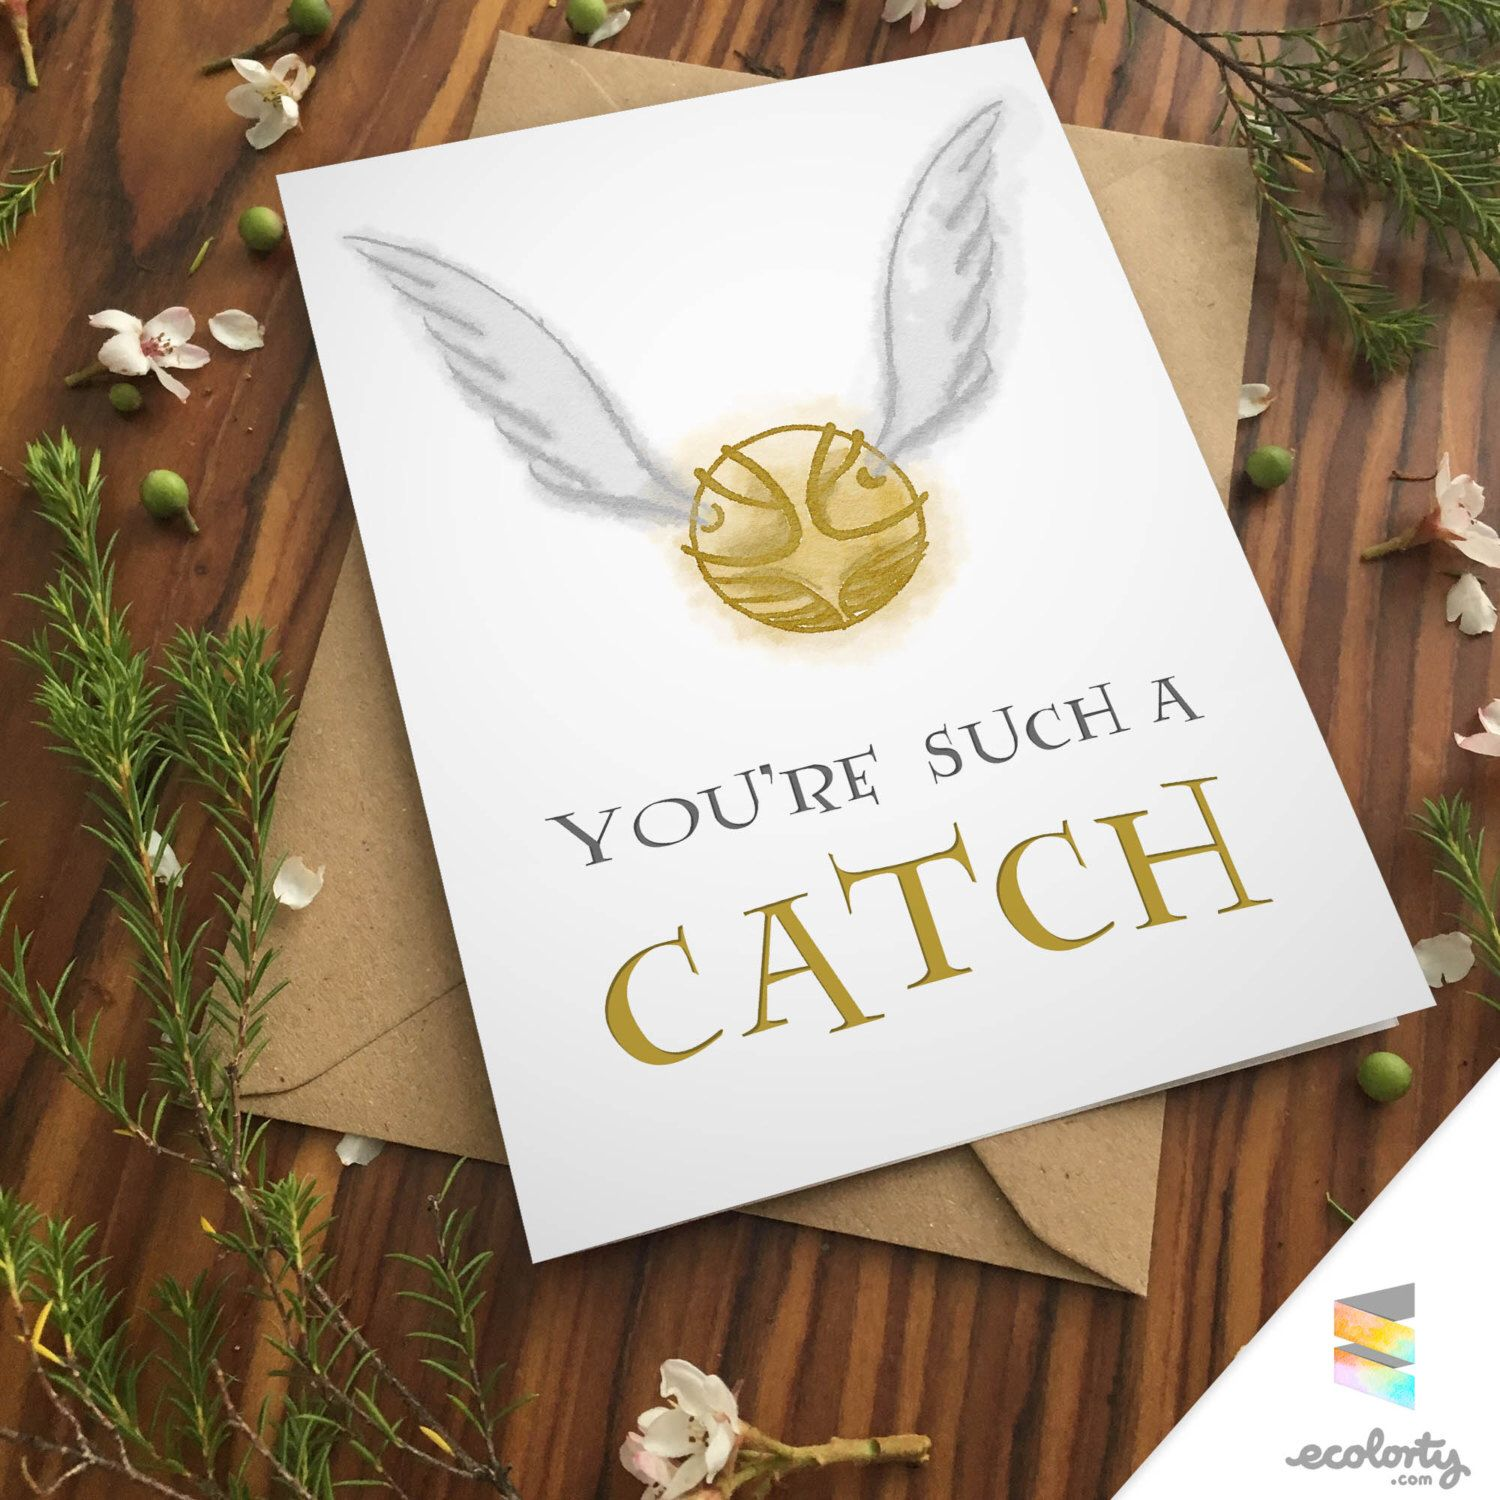 Golden snitch card harry potter greeting card albus dumbledore cute golden snitch card harry potter greeting card albus dumbledore cute anniversary art wizard quidditch pun magic kristyandbryce Images